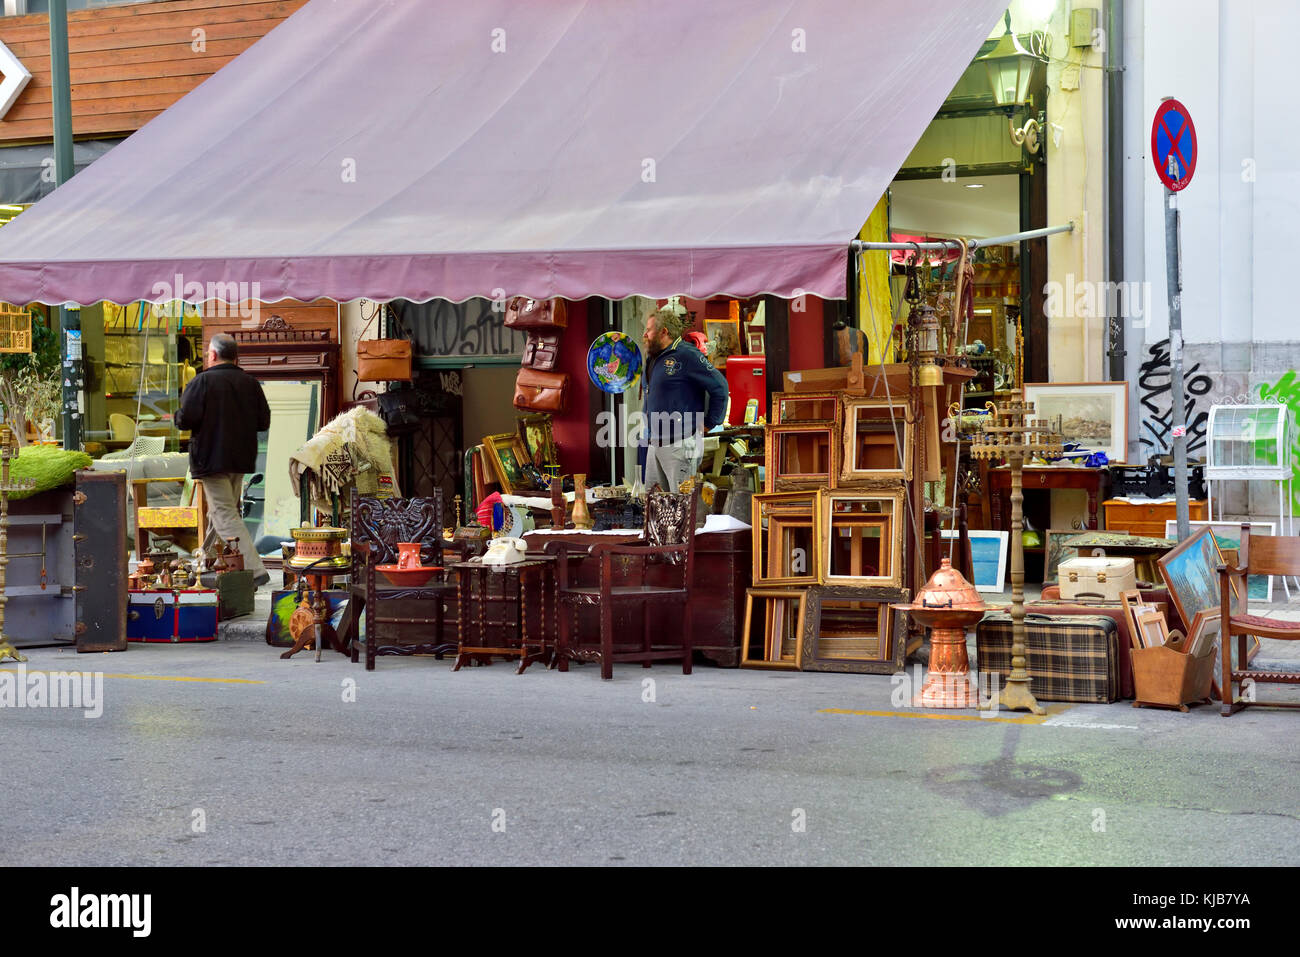 Street market with bric-a-brac, antiques and collectables in Ermou Street Monastiriaki area of central Athens, Greece - Stock Image